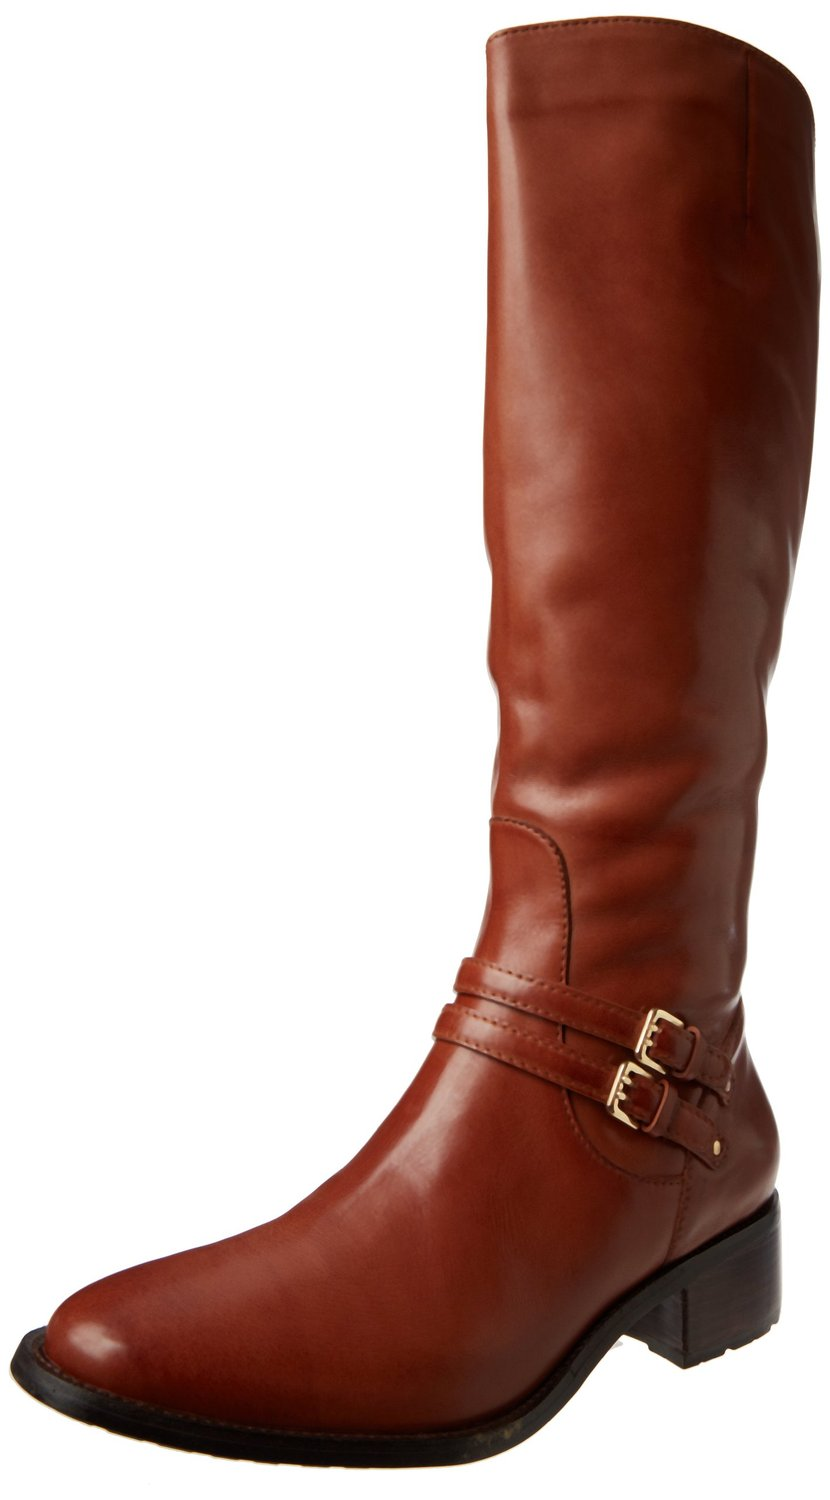 665a024caac Get Quotations · Cole Haan Women s Dover Riding Boot